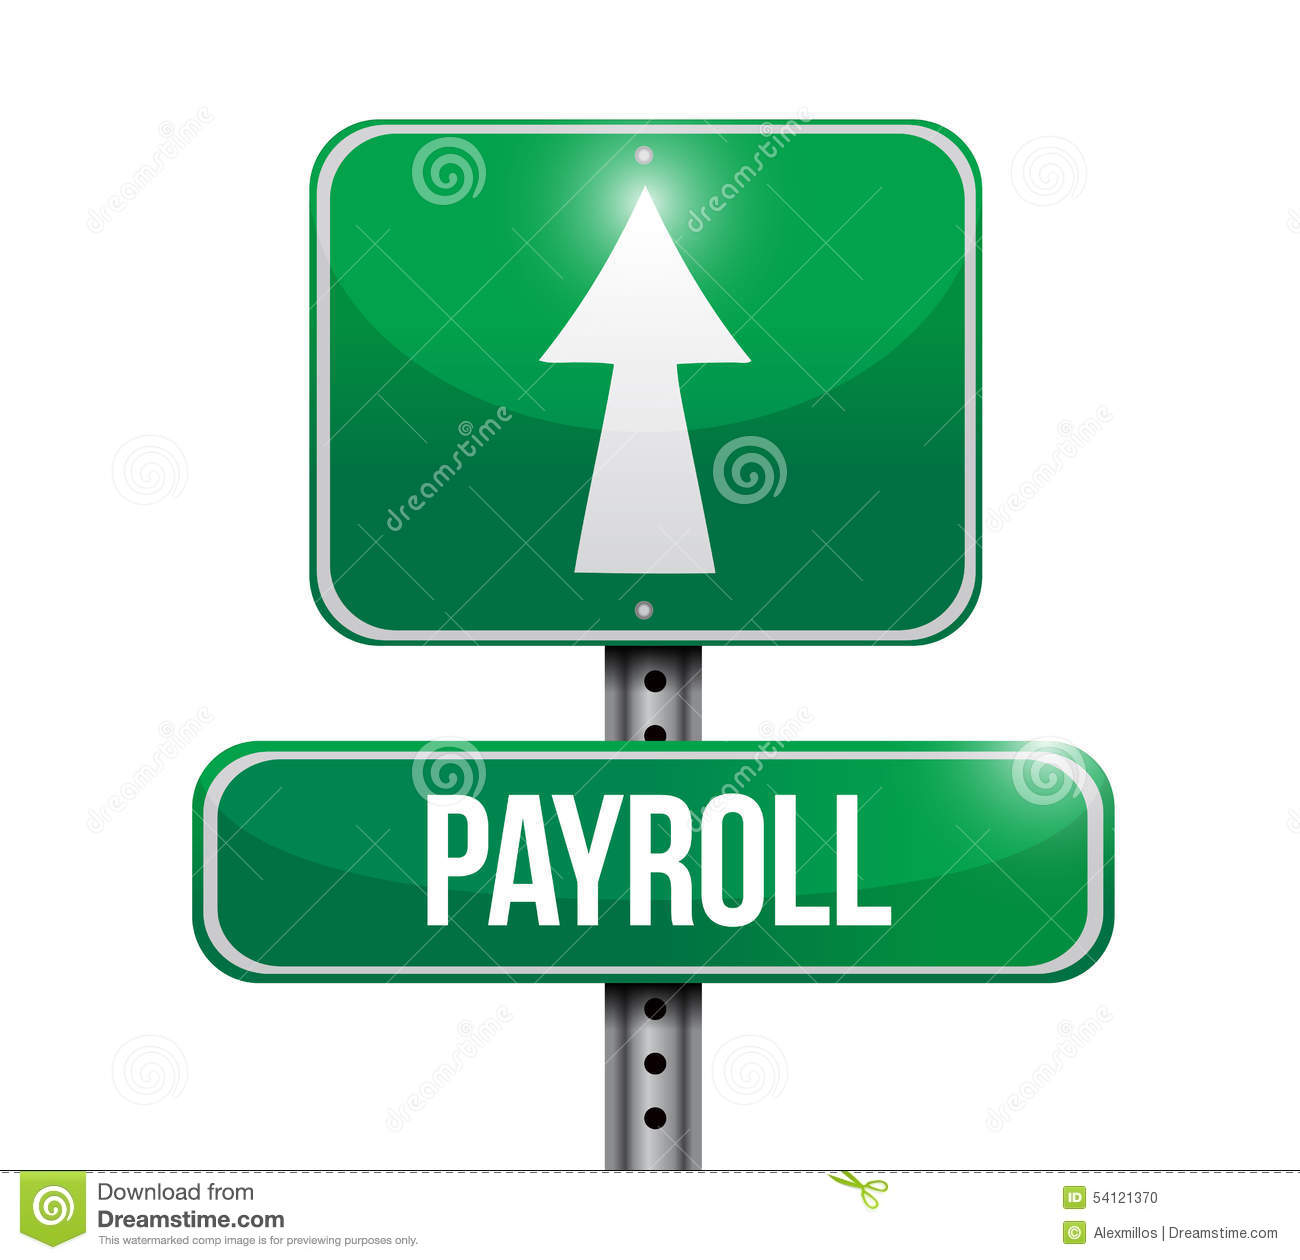 payroll road sign concept illustration stock illustration